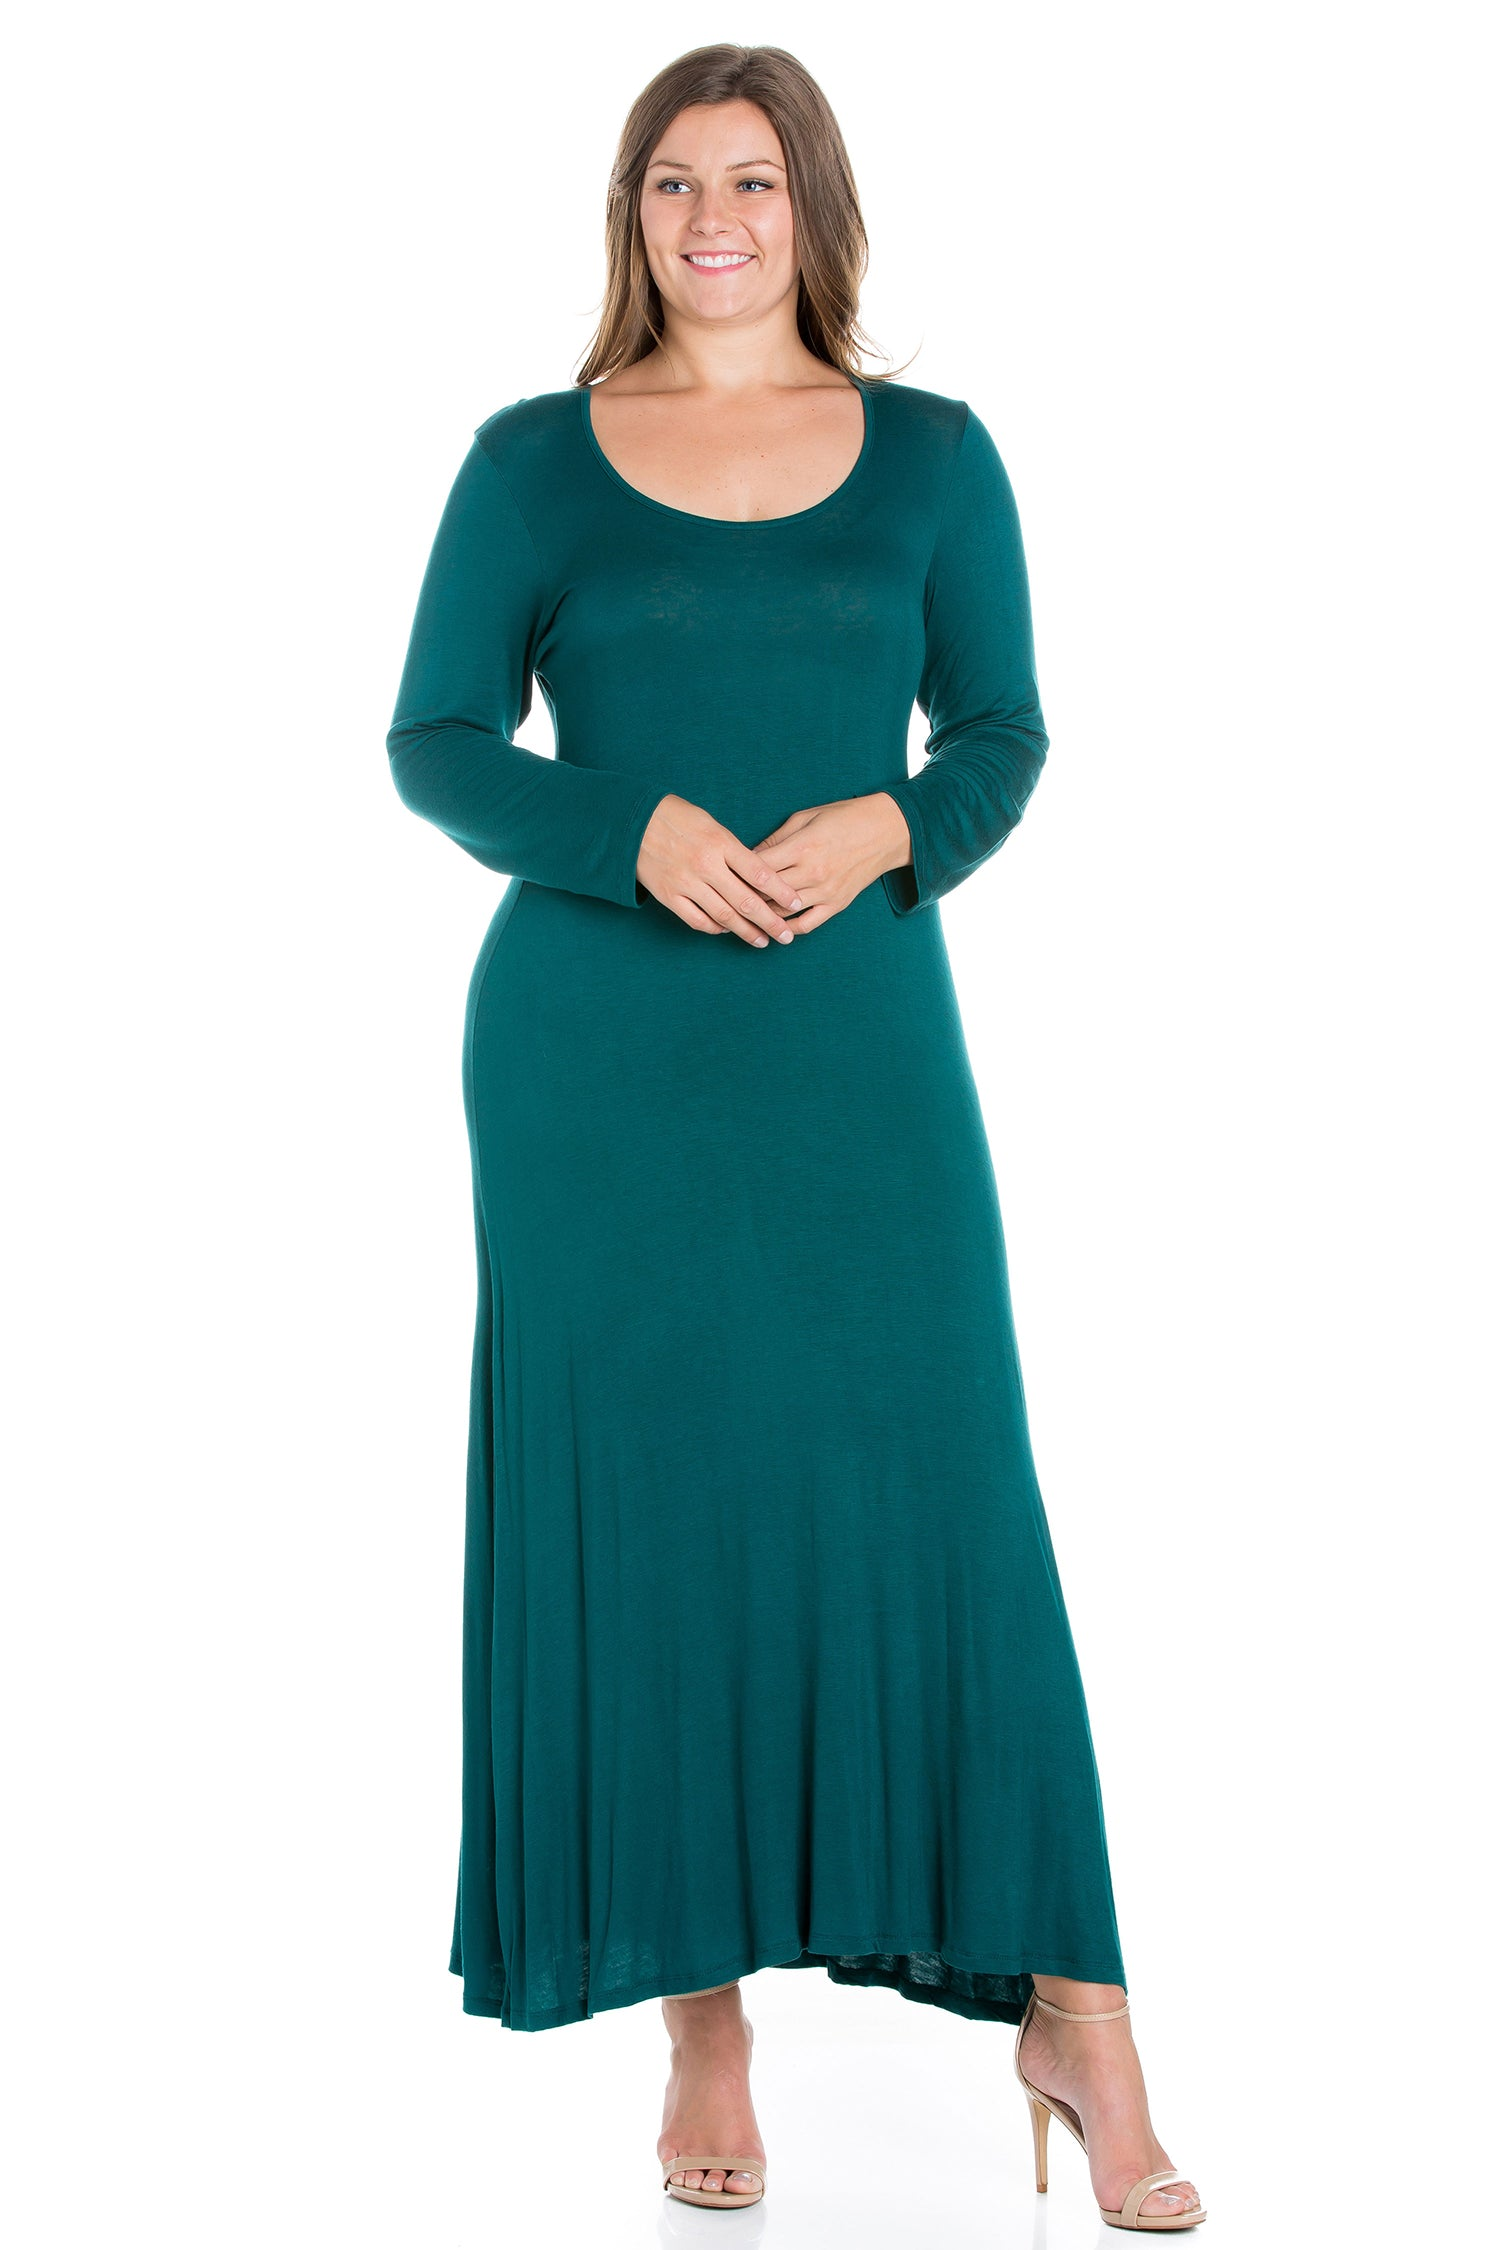 24seven Comfort Apparel Womens Long Sleeve Plus Size Maxi Dress-DRESSES-24Seven Comfort Apparel-FOREST-1X-24/7 Comfort Apparel